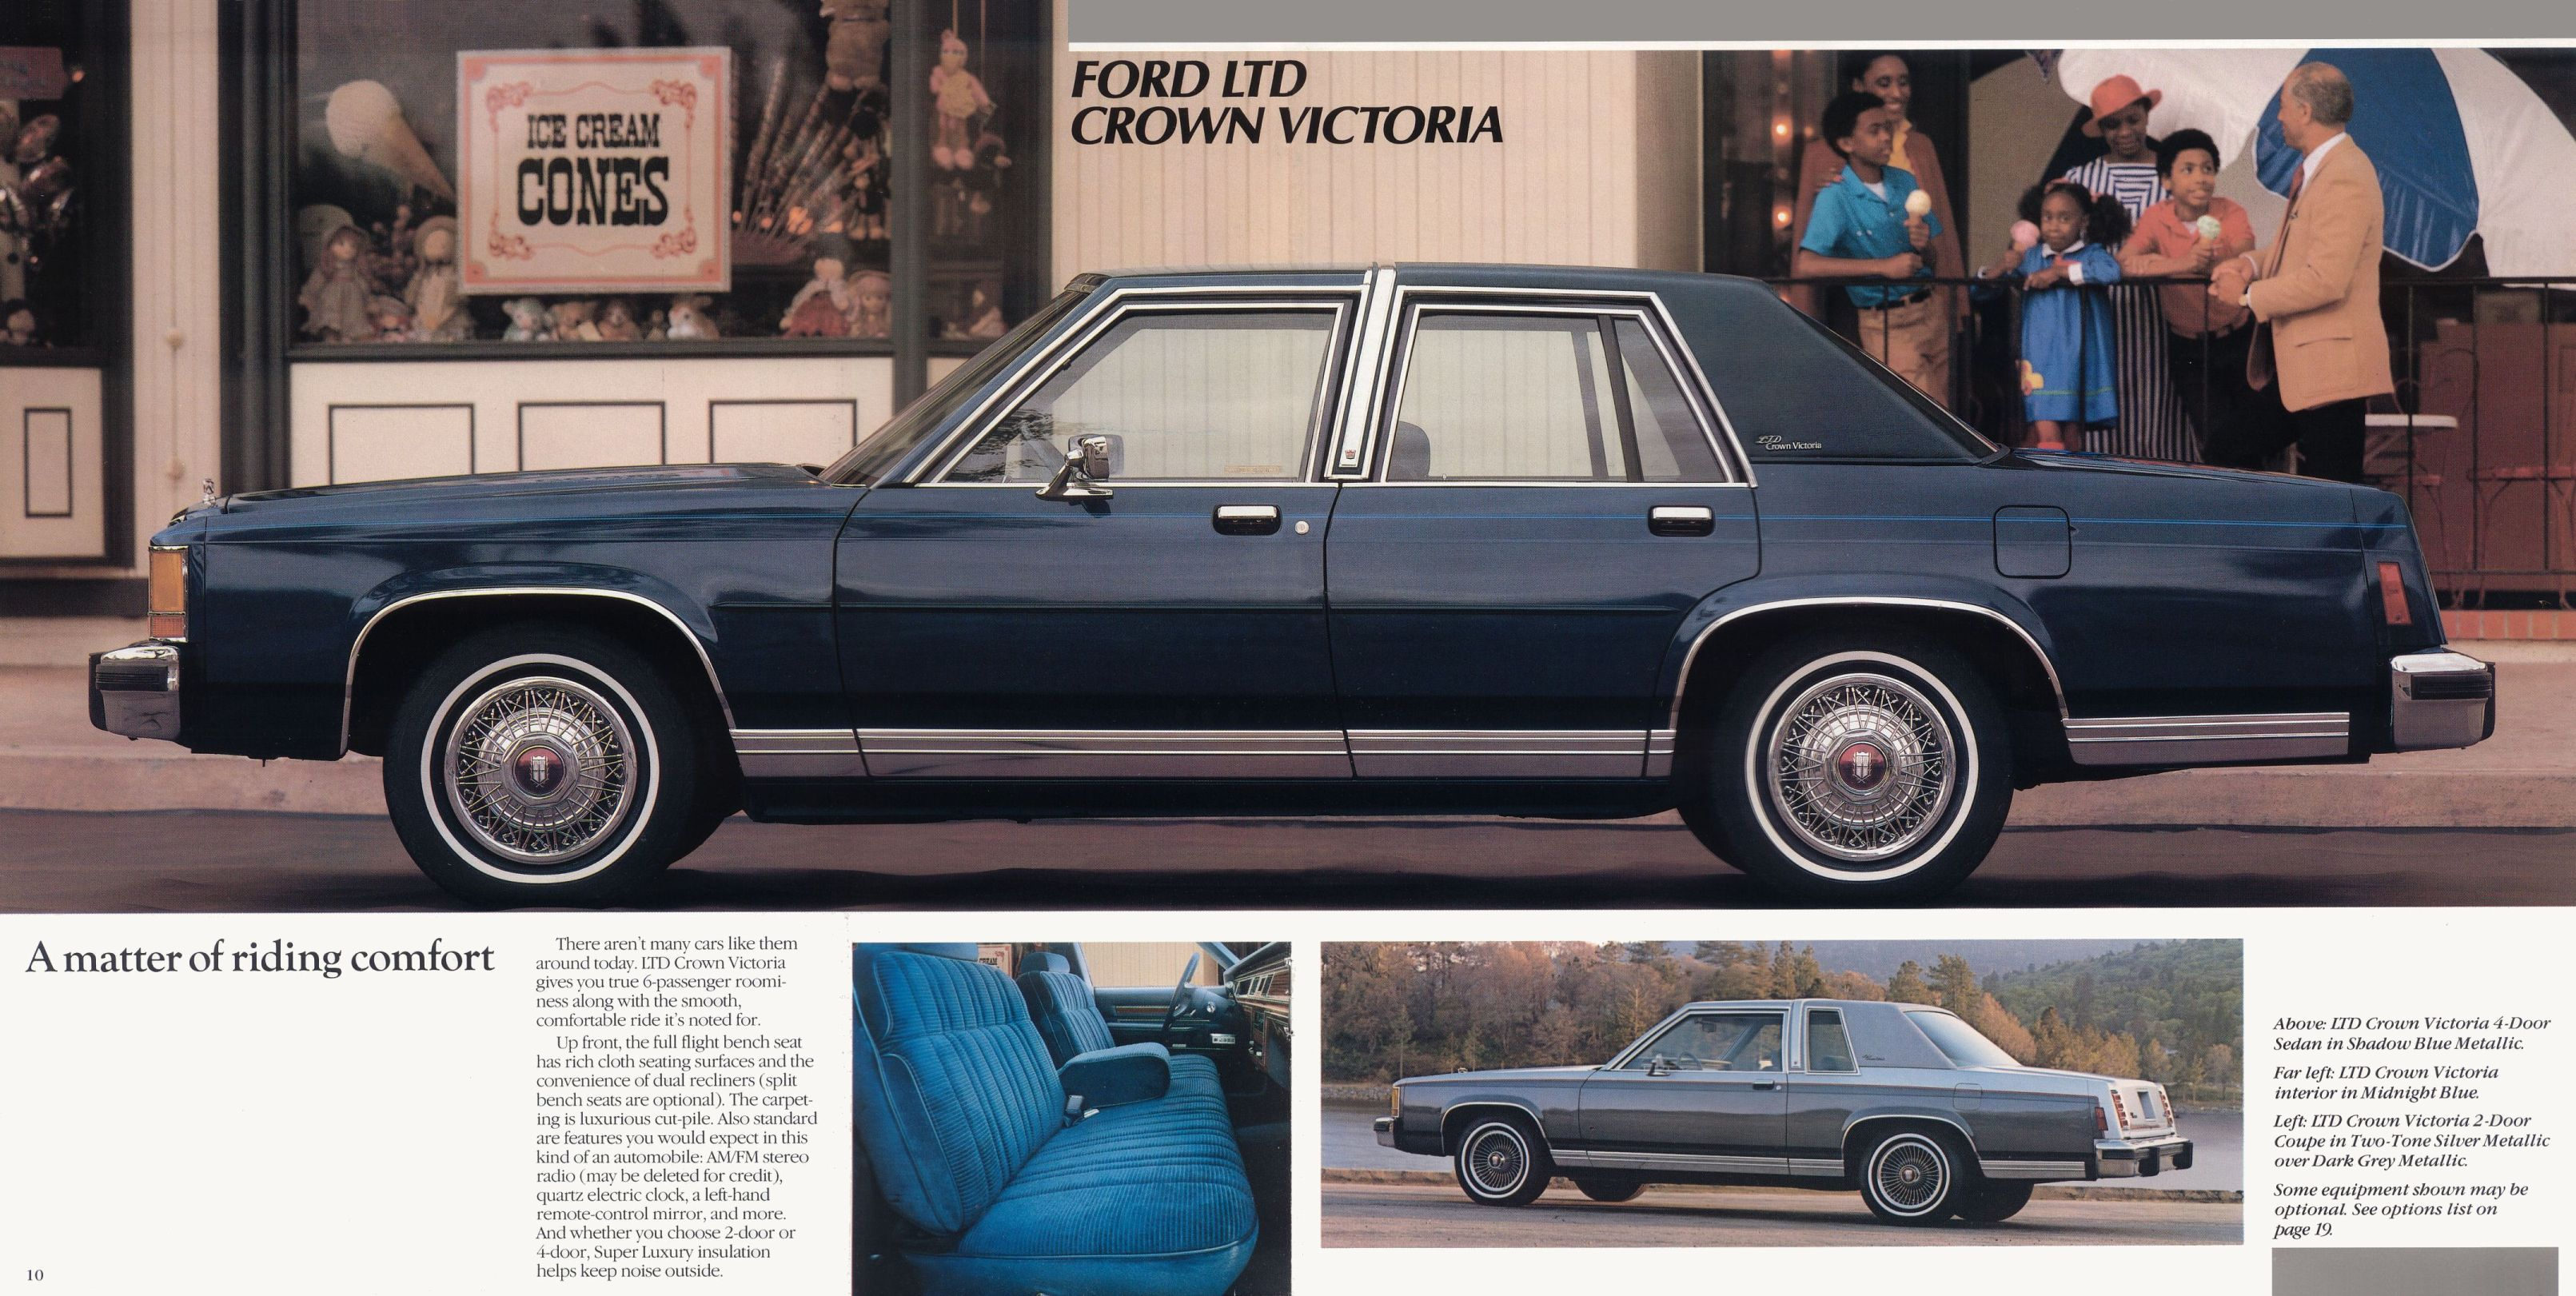 Ford Taurus 1980 2019 2020 Top Car Designs Crown Victoria Coupe 1986 Brochure